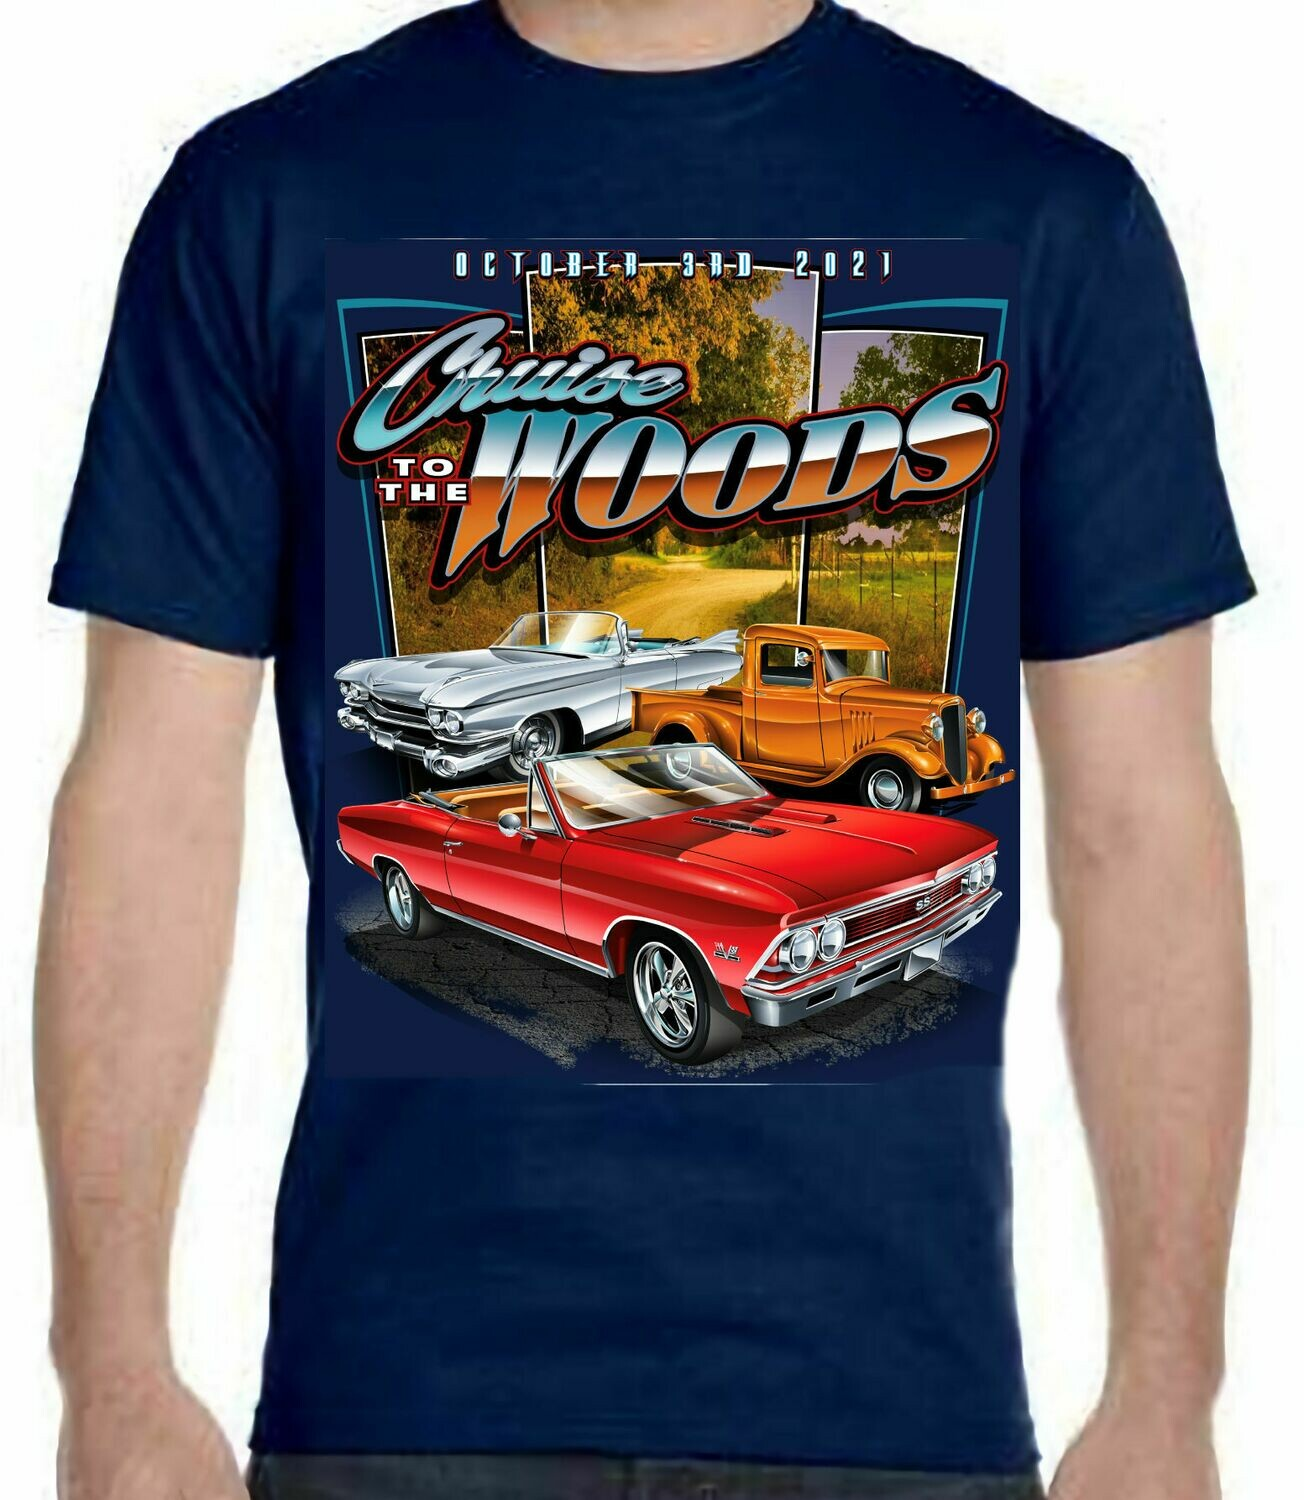 Cruise to the Woods T-shirts (available for shipping Apx. June 1)